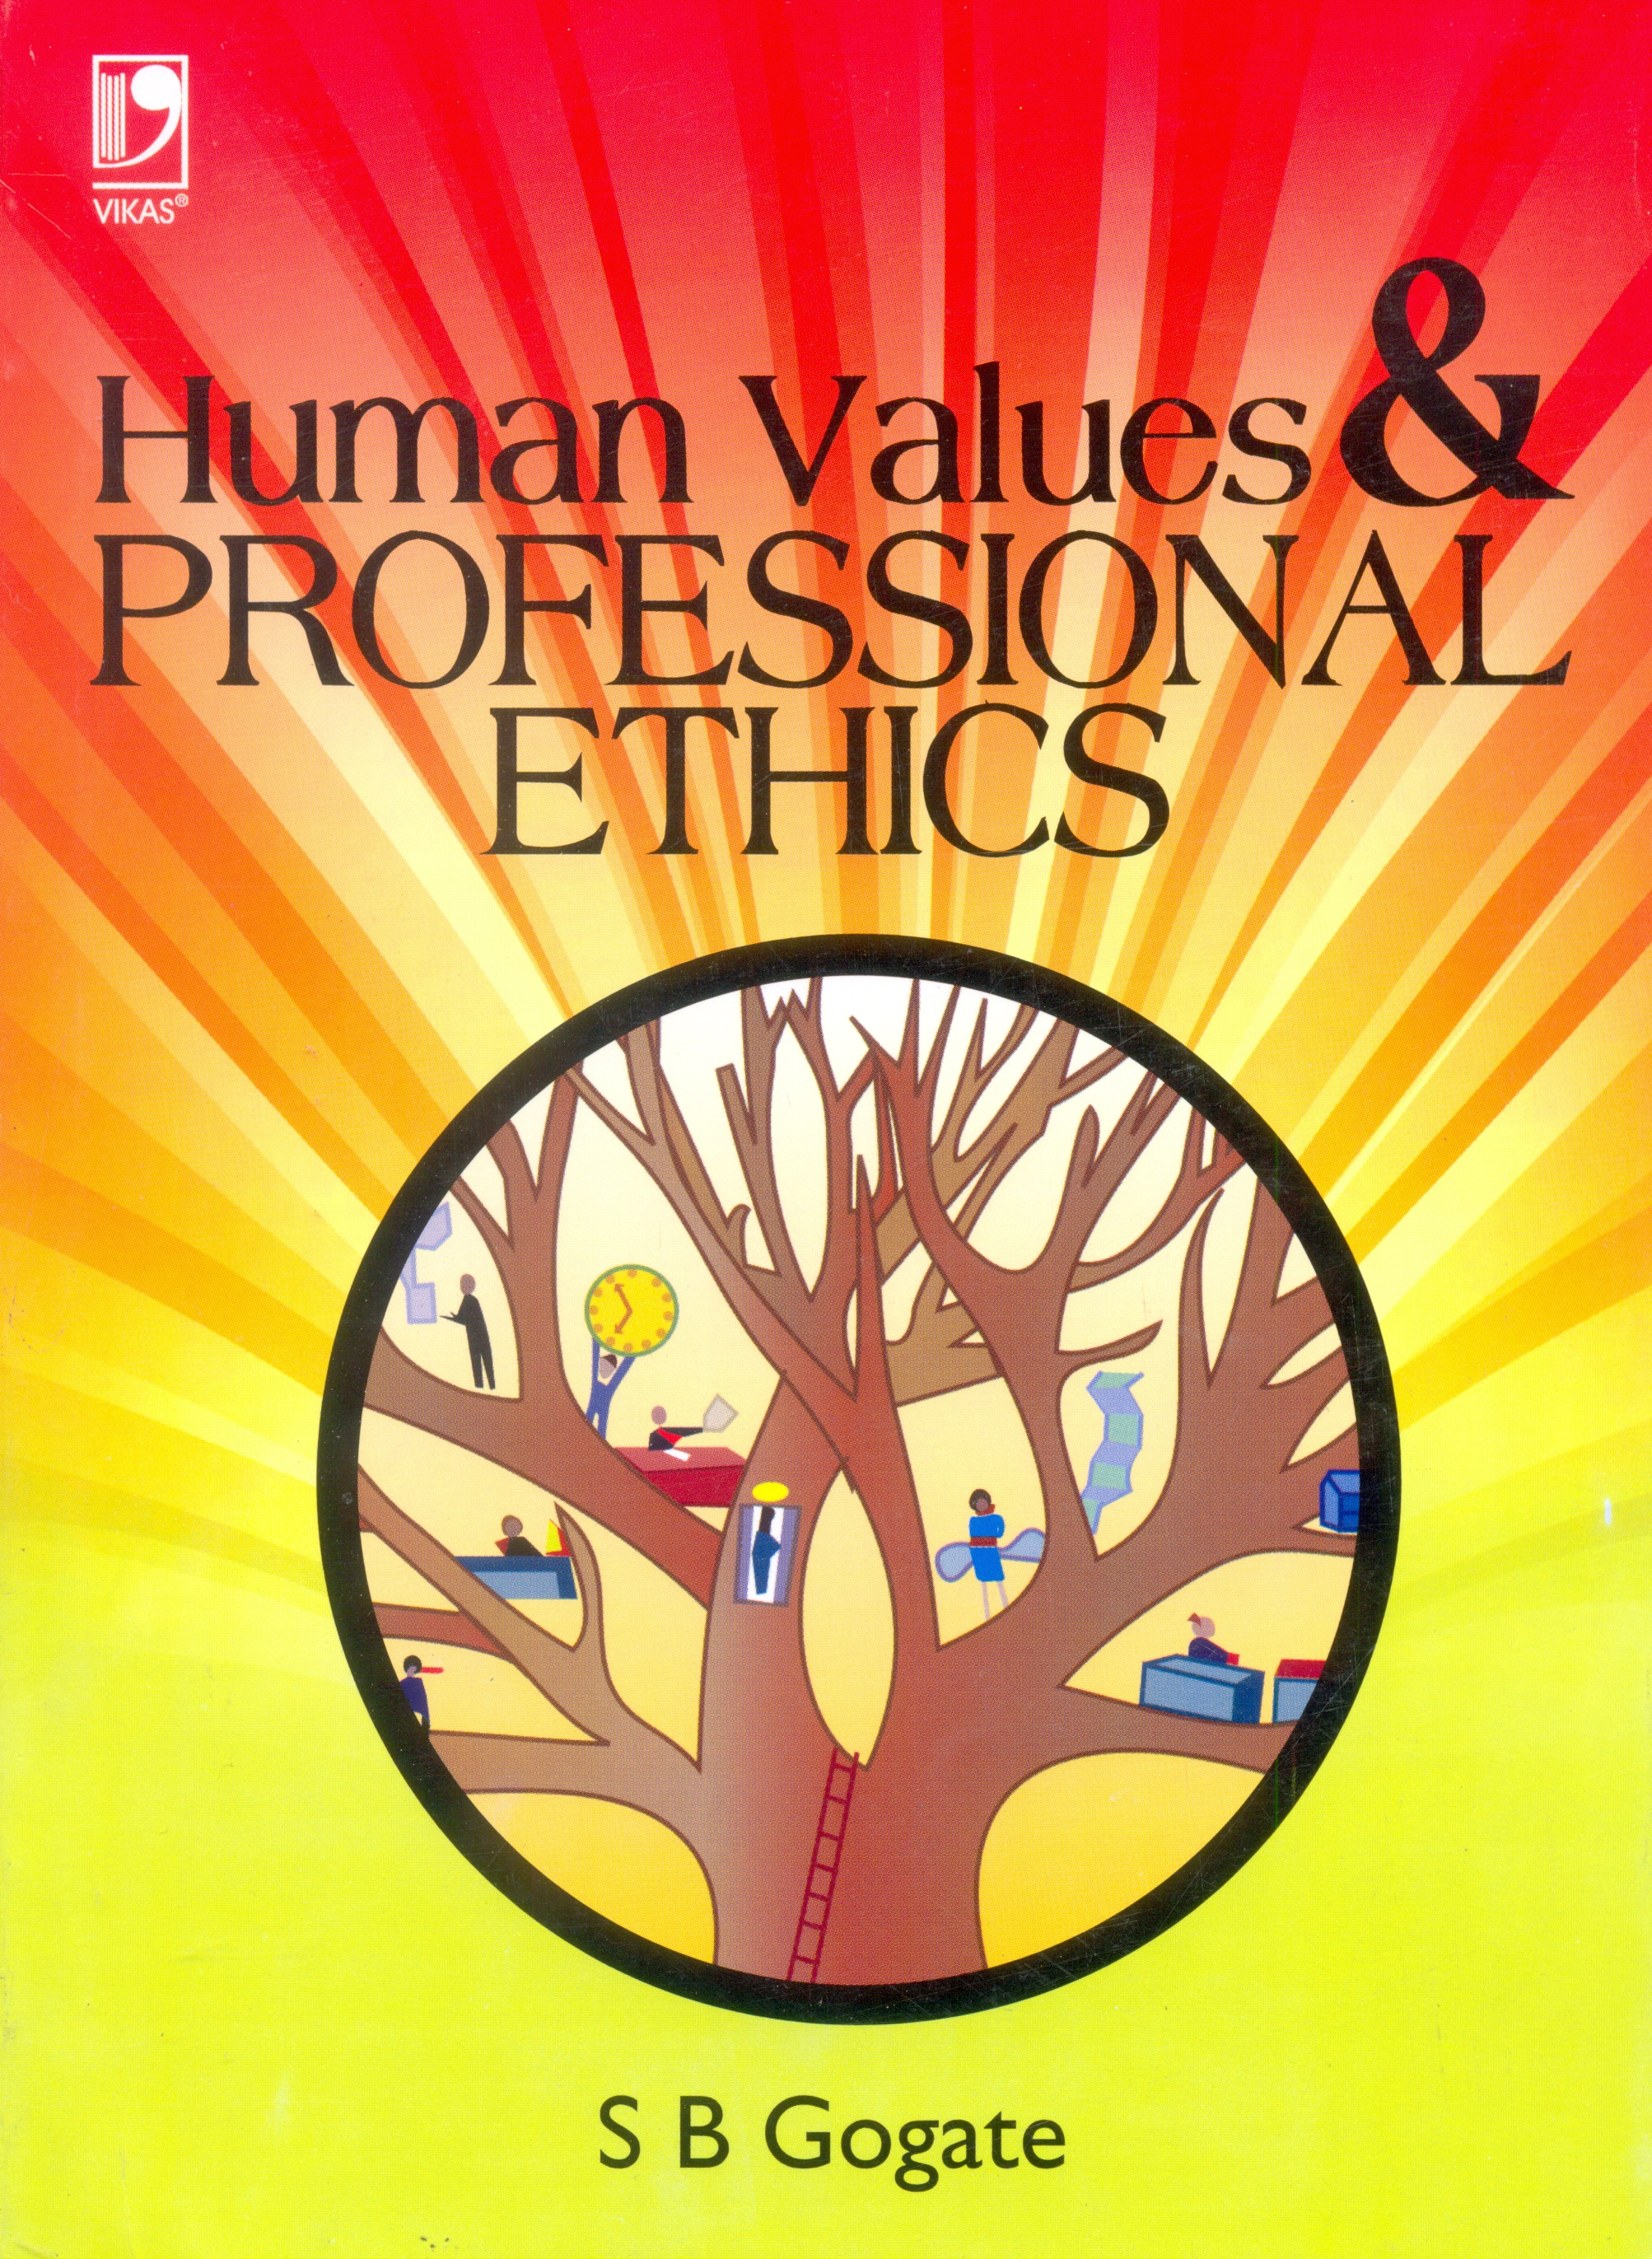 professional value and ethics essay Read this essay on professional values and ethics come browse our large digital warehouse of free sample essays get the knowledge you need in order to pass your classes and more.